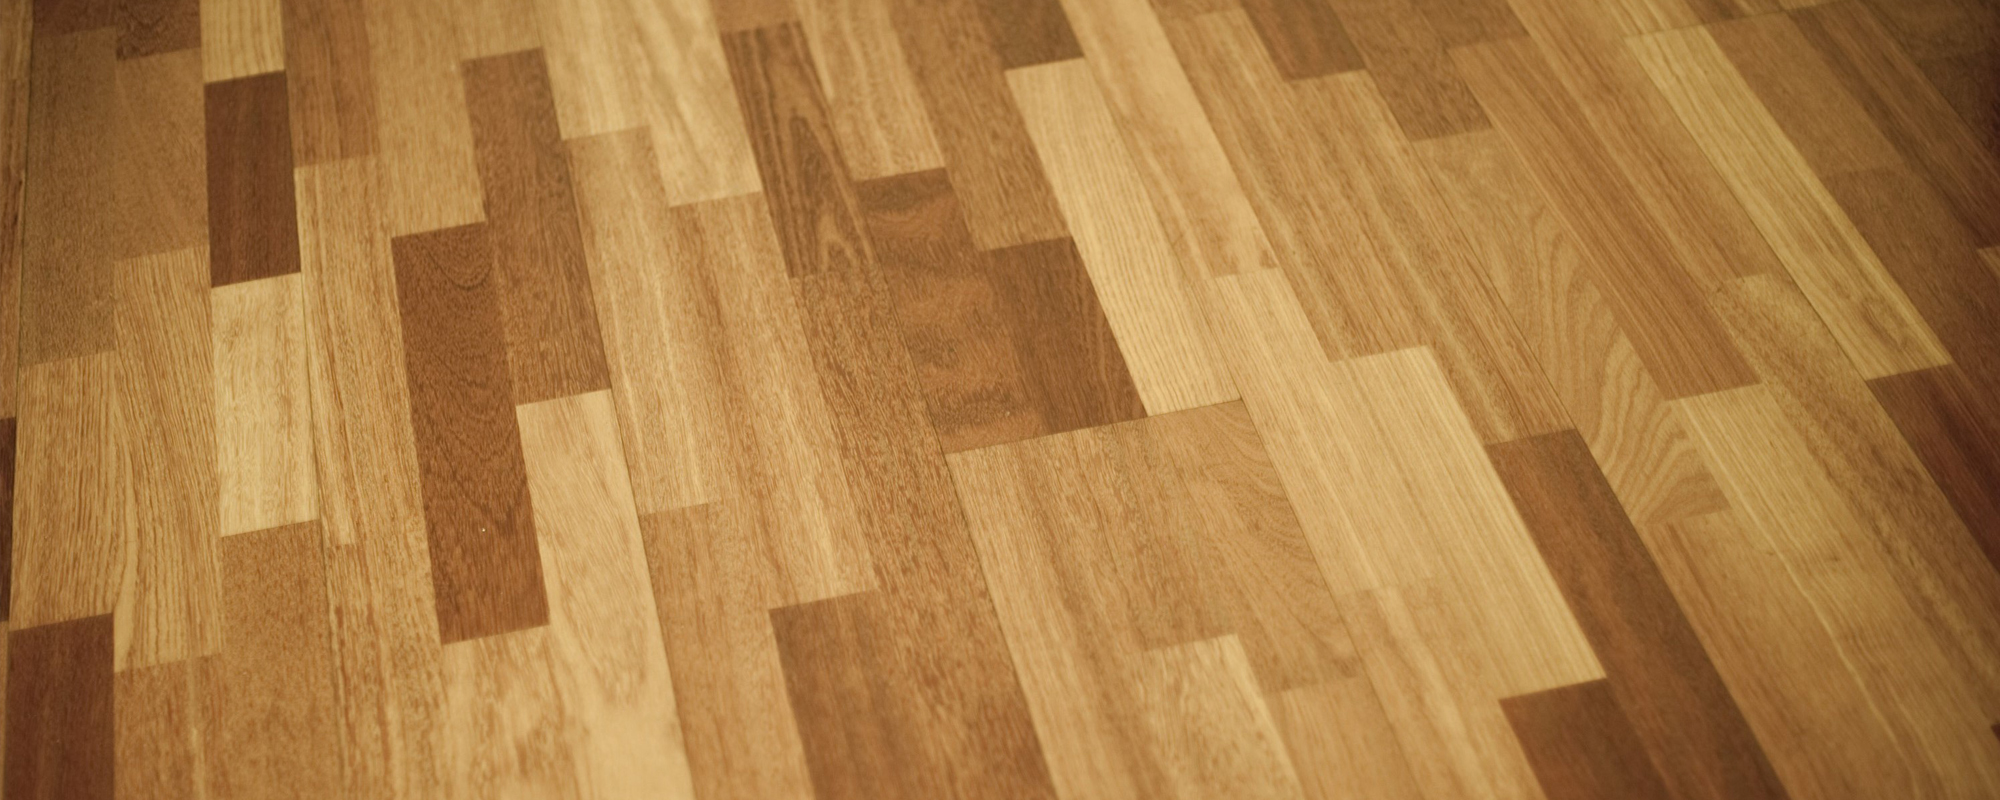 Why You Should Have Your Hardwood Floor Professionally